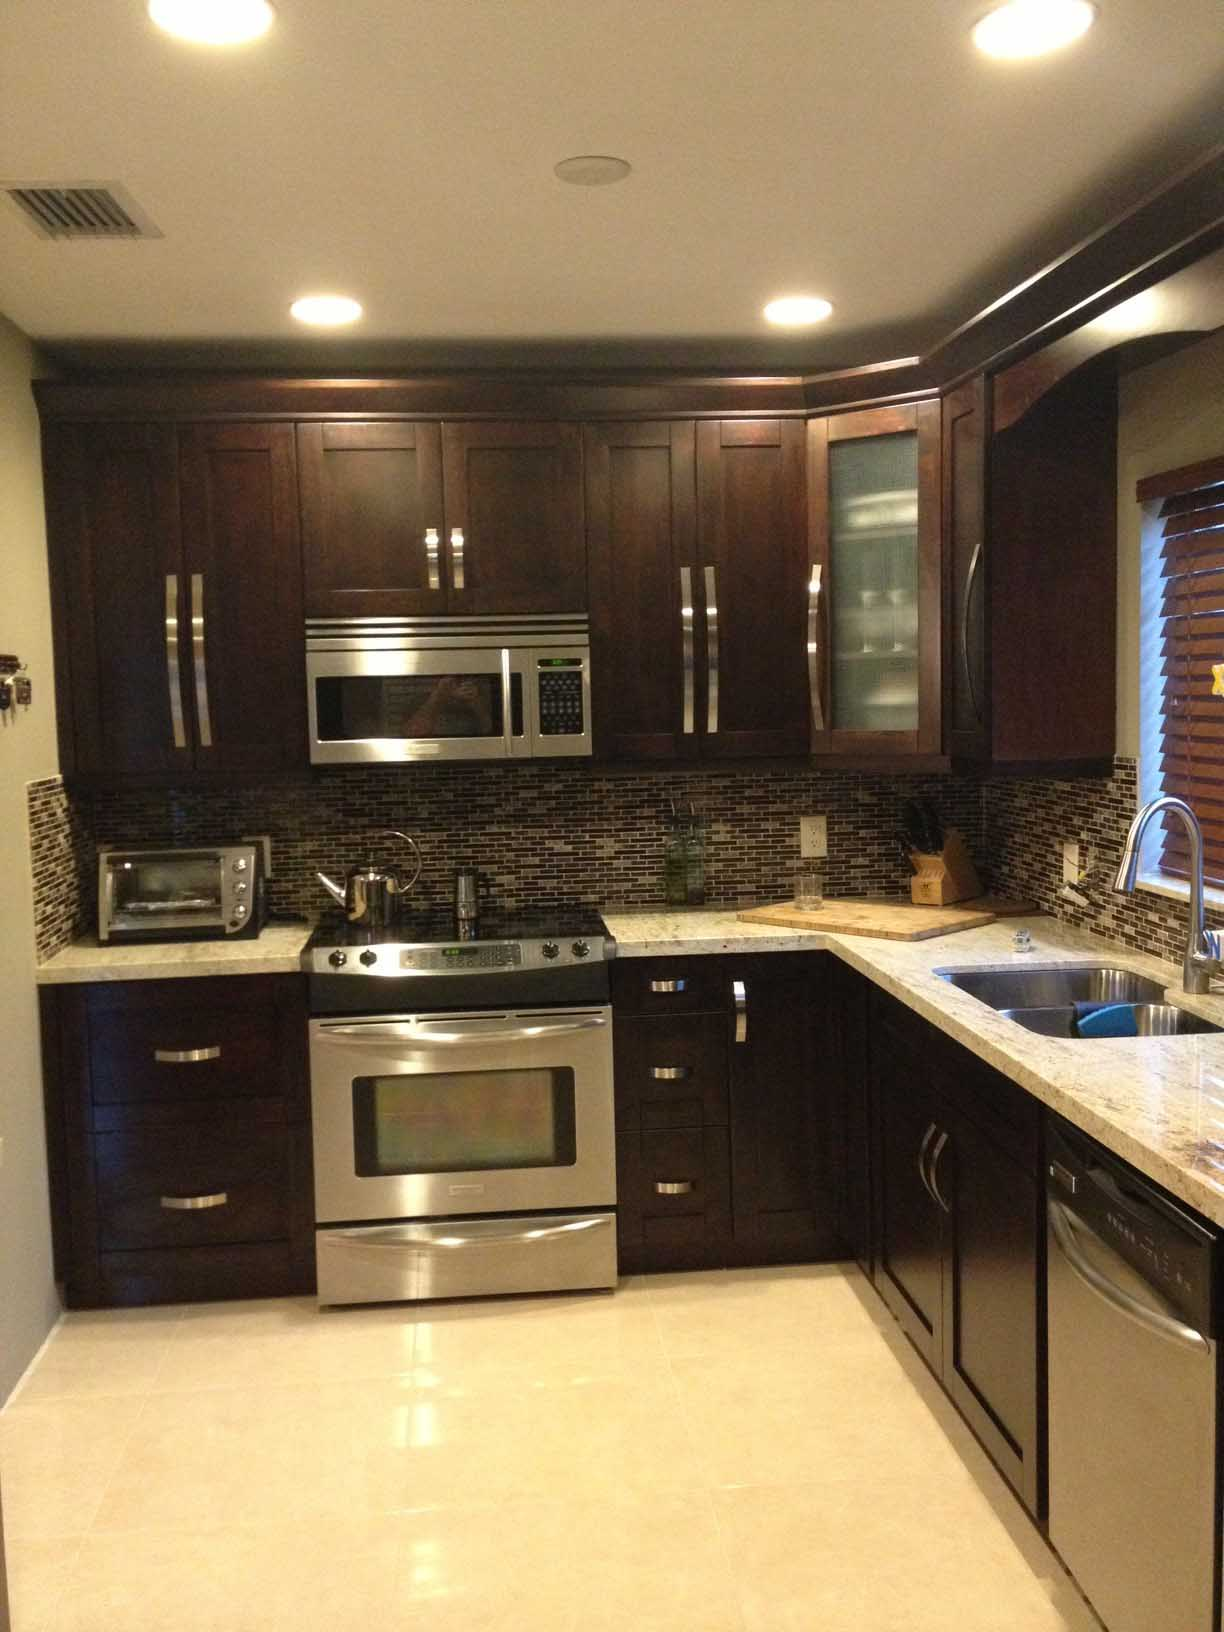 new kitchens in miami dade kitchen remodeling miami New kitchen in Miami s Schenley Park